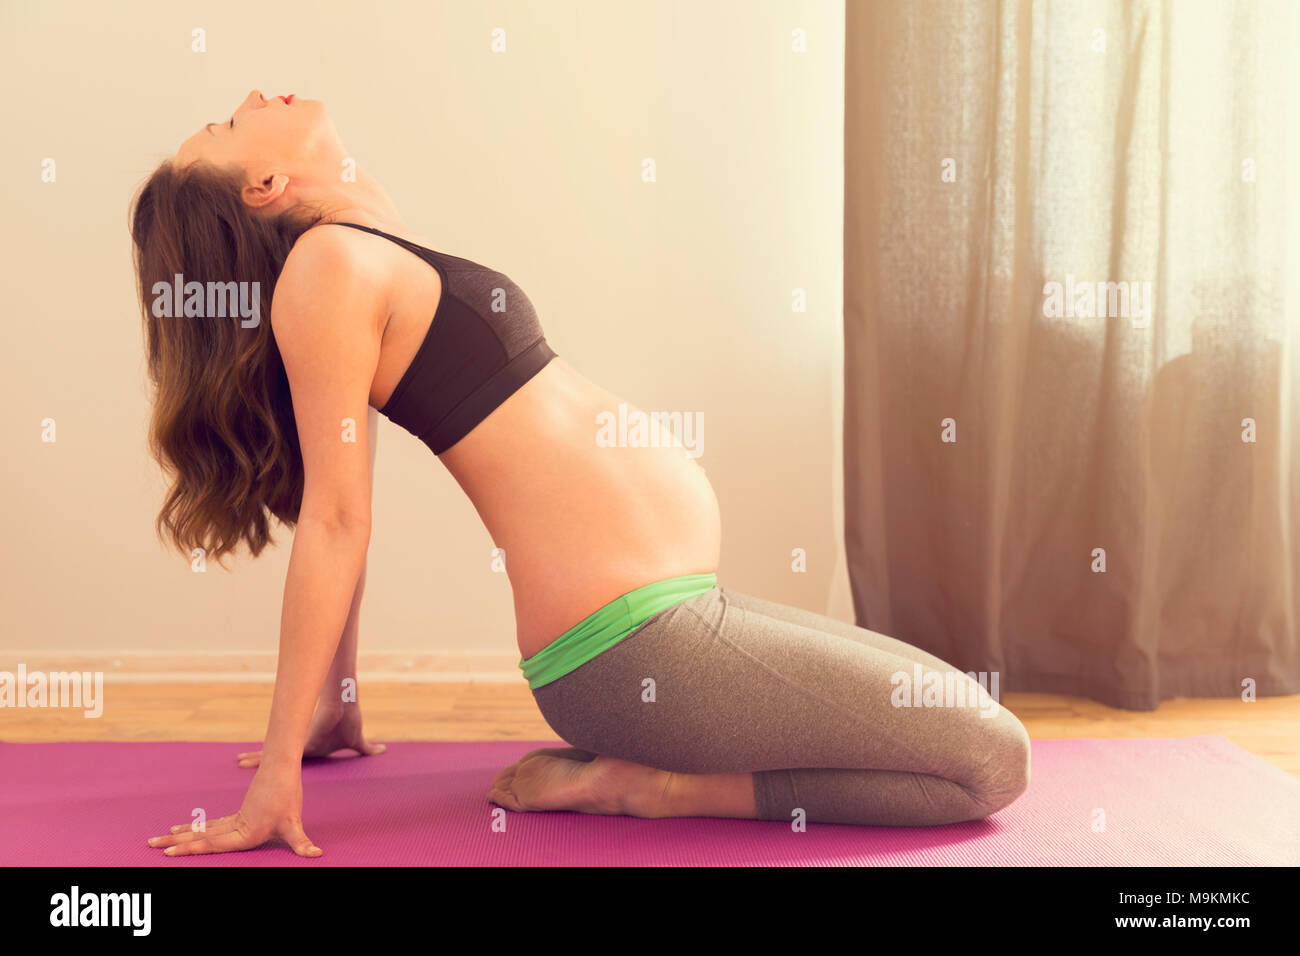 Pregnancy, yoga, people and healthy lifestyle concept - happy pregnant woman exercising at home - Stock Image